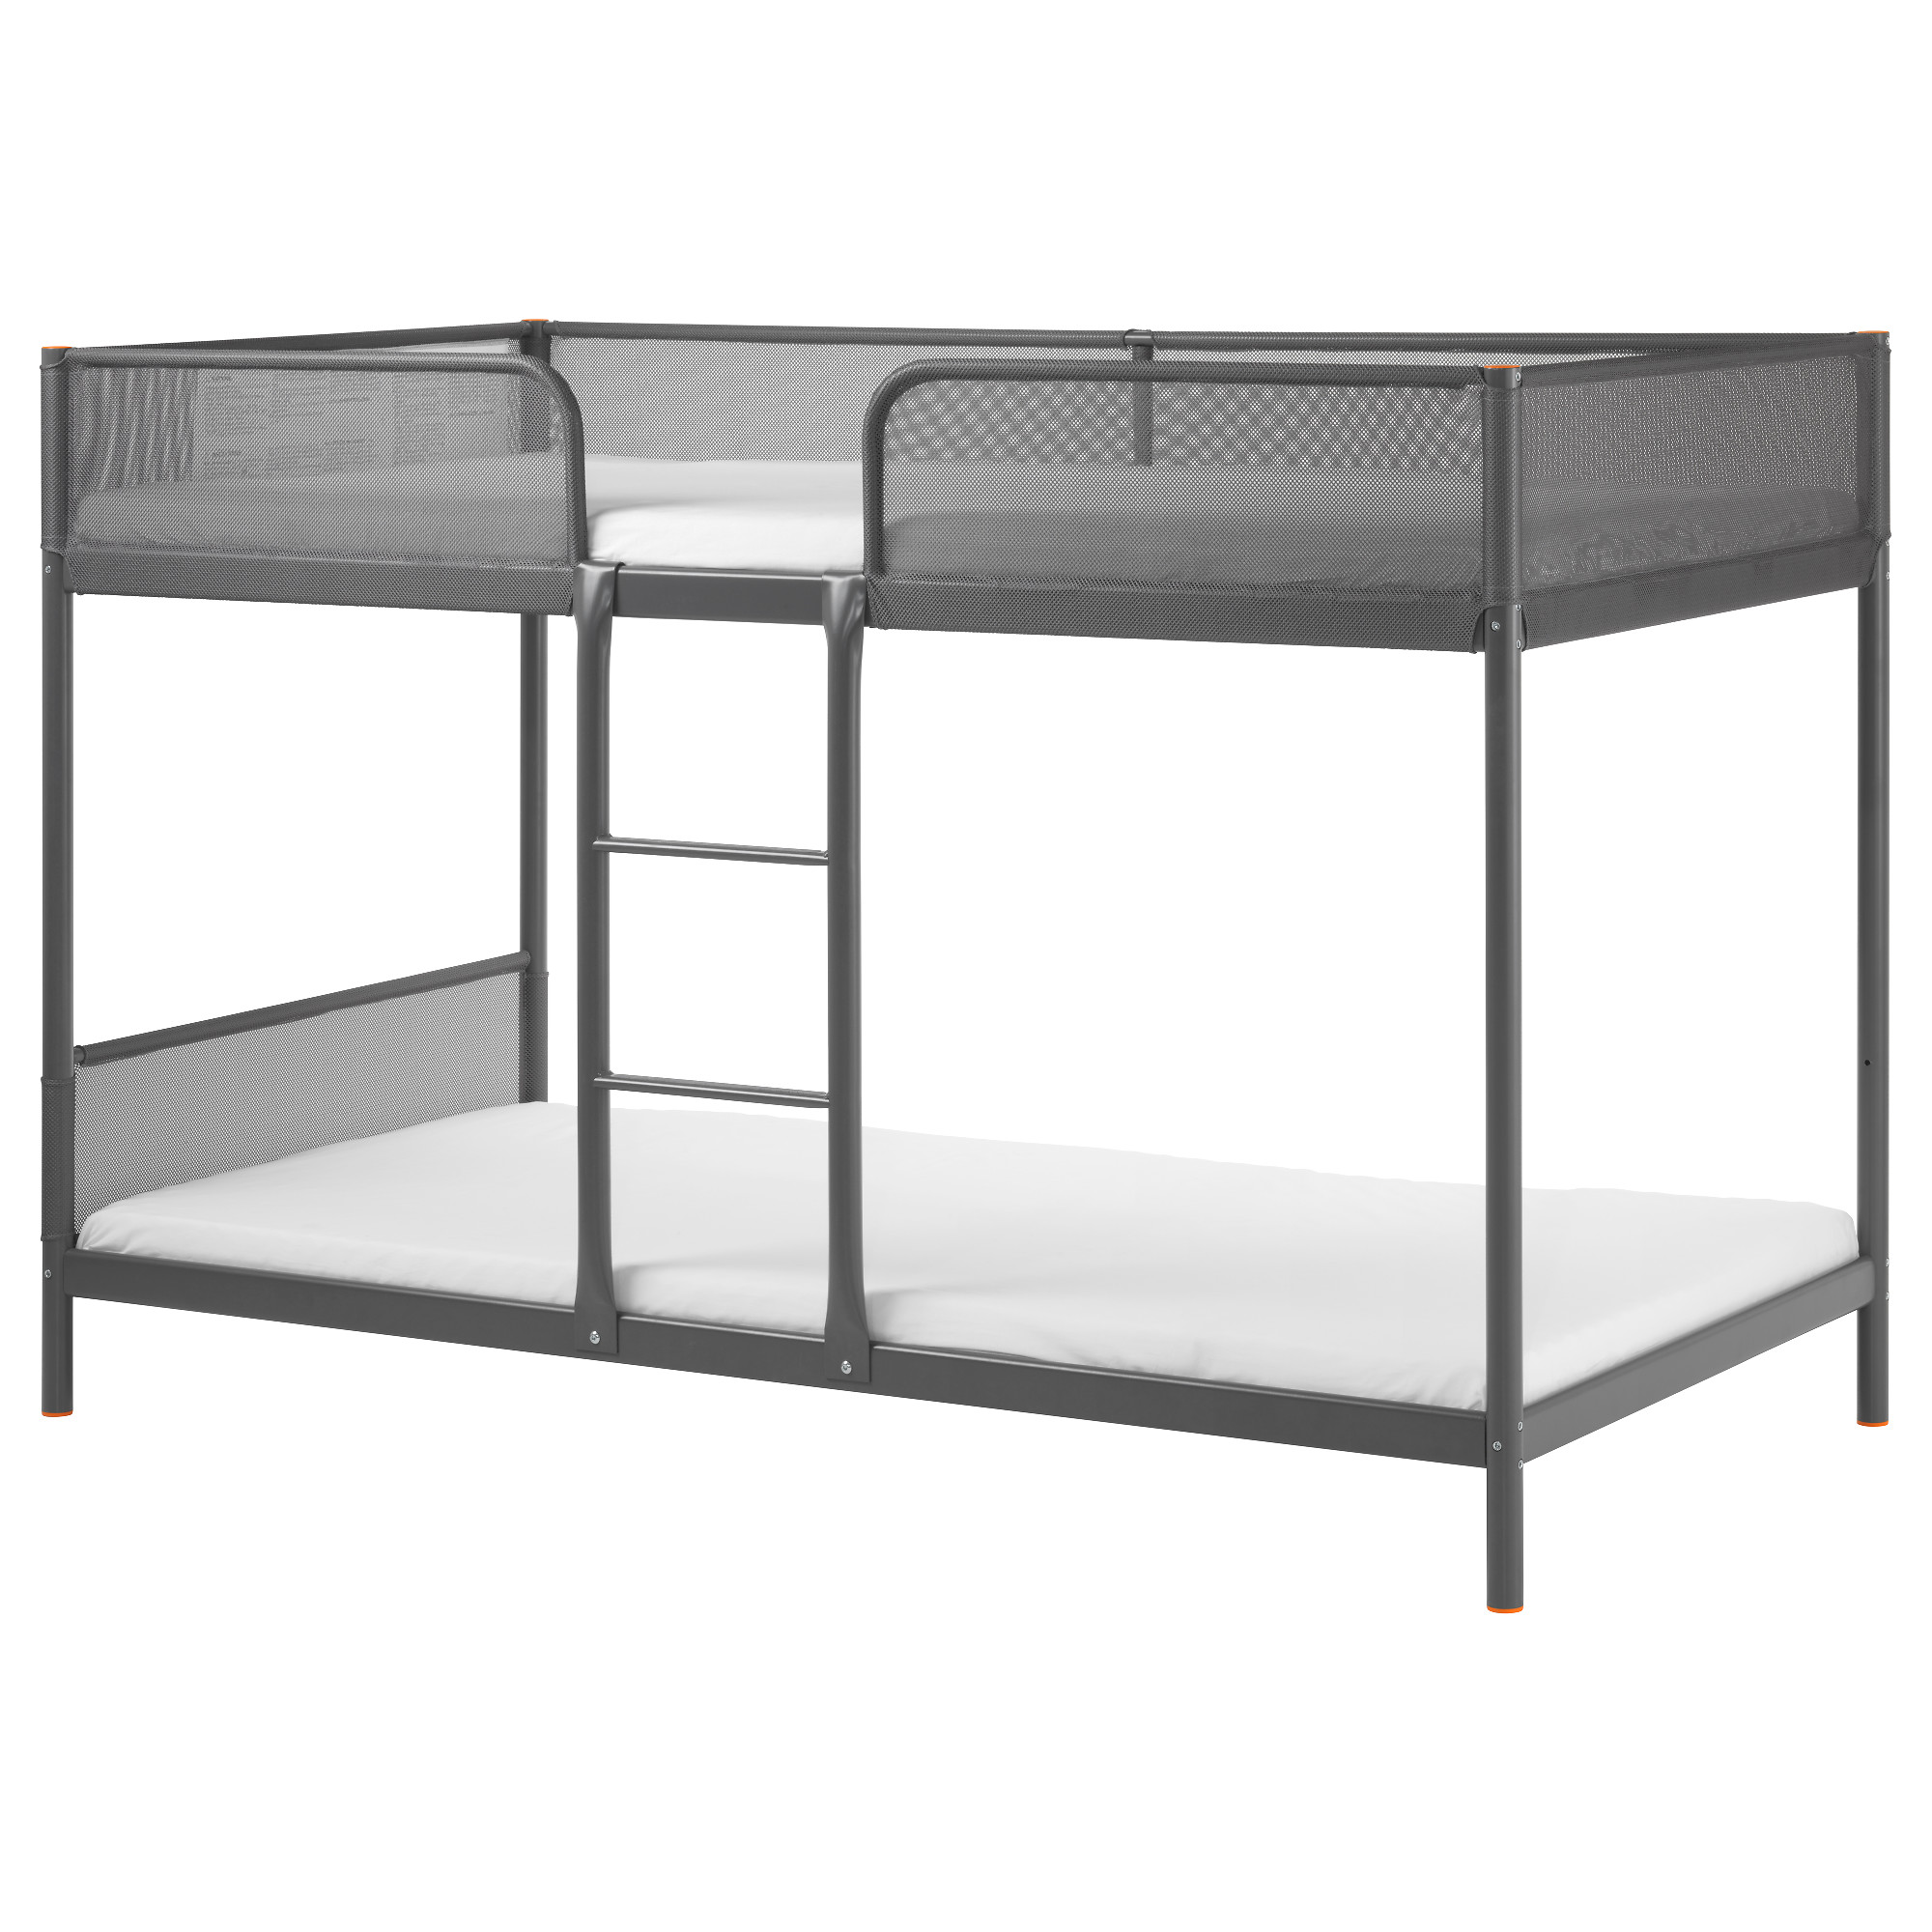 Bunk bed with desk underneath ikea - Tuffing Bunk Bed Frame Dark Gray Length 77 1 2 Width